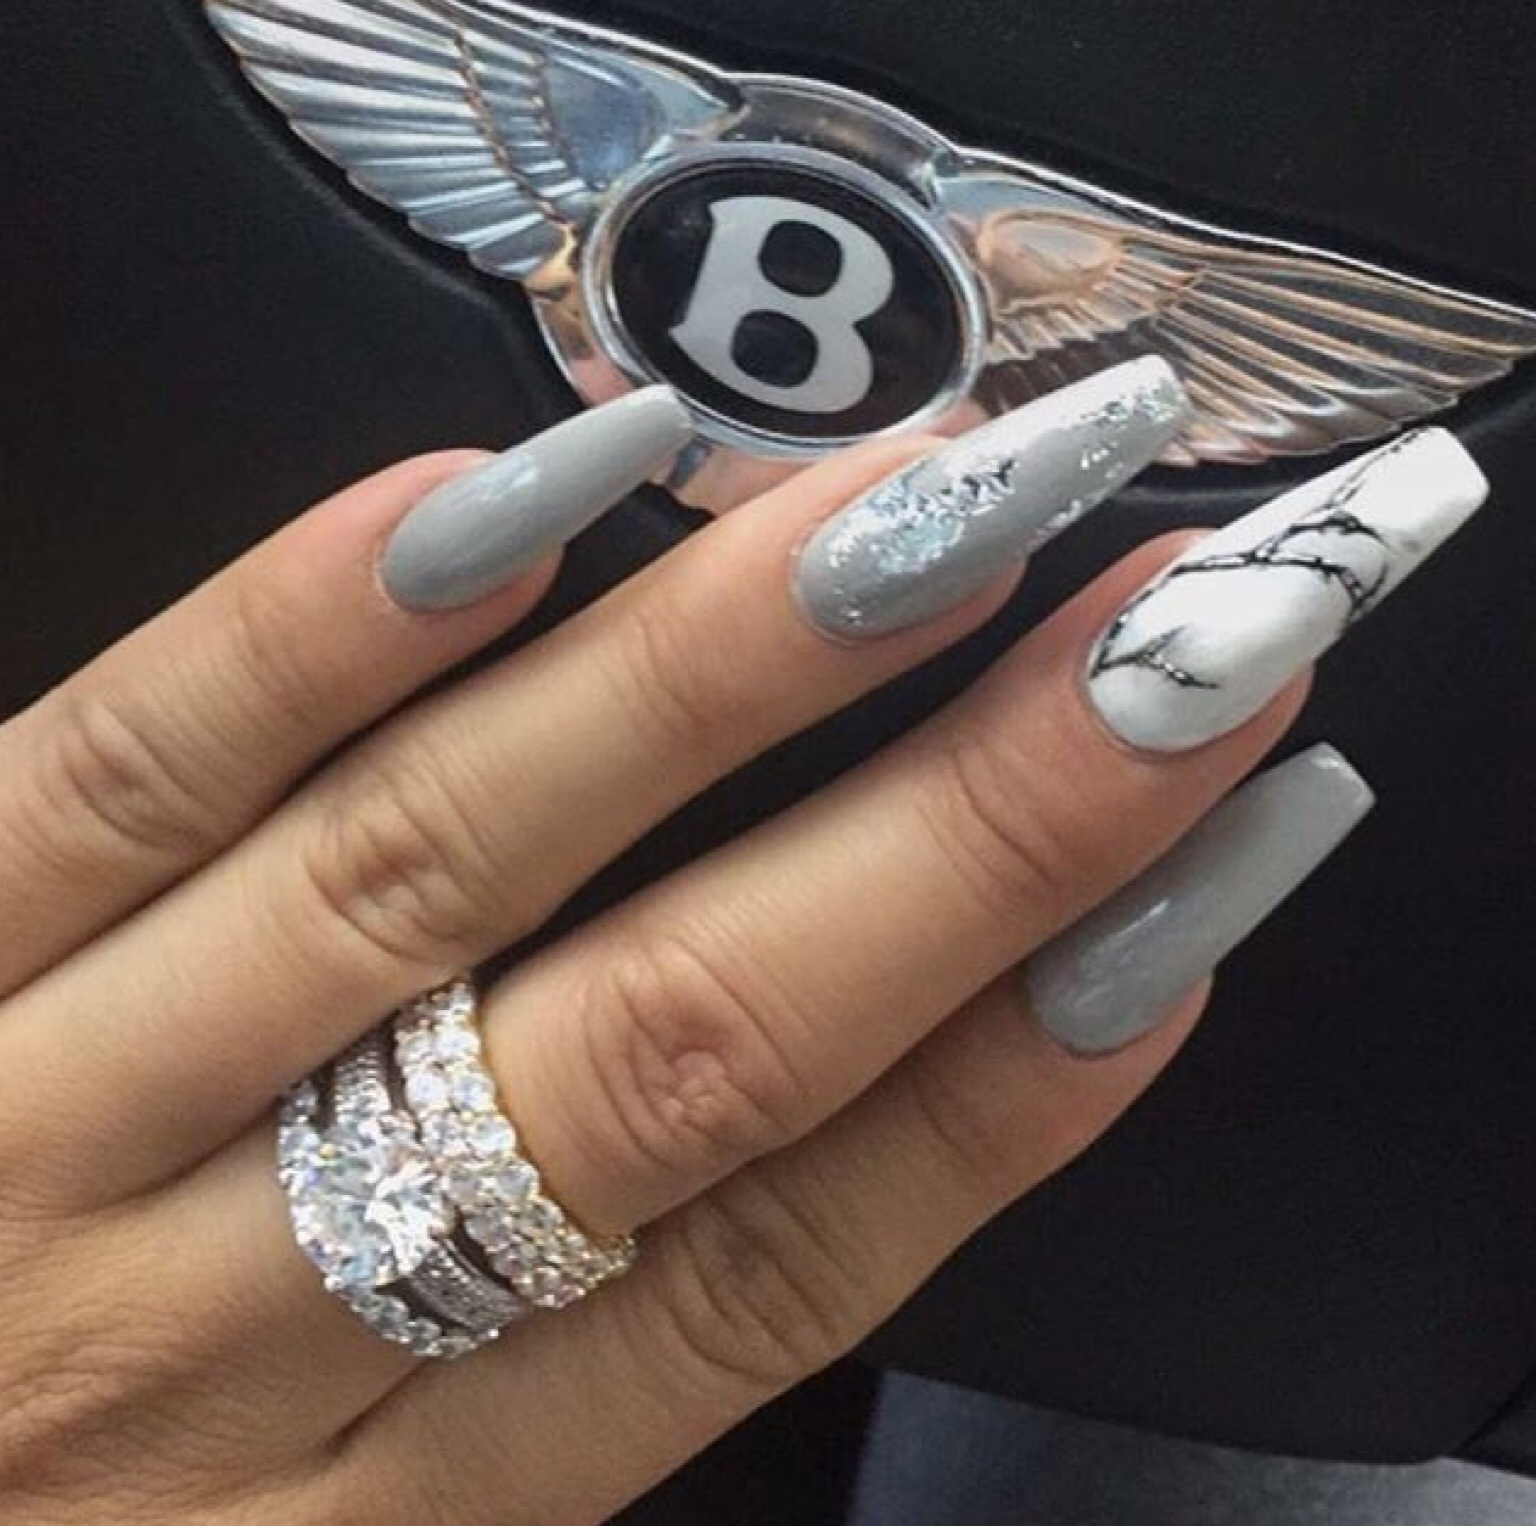 accessories, long nails, nails, nails art, nails polish